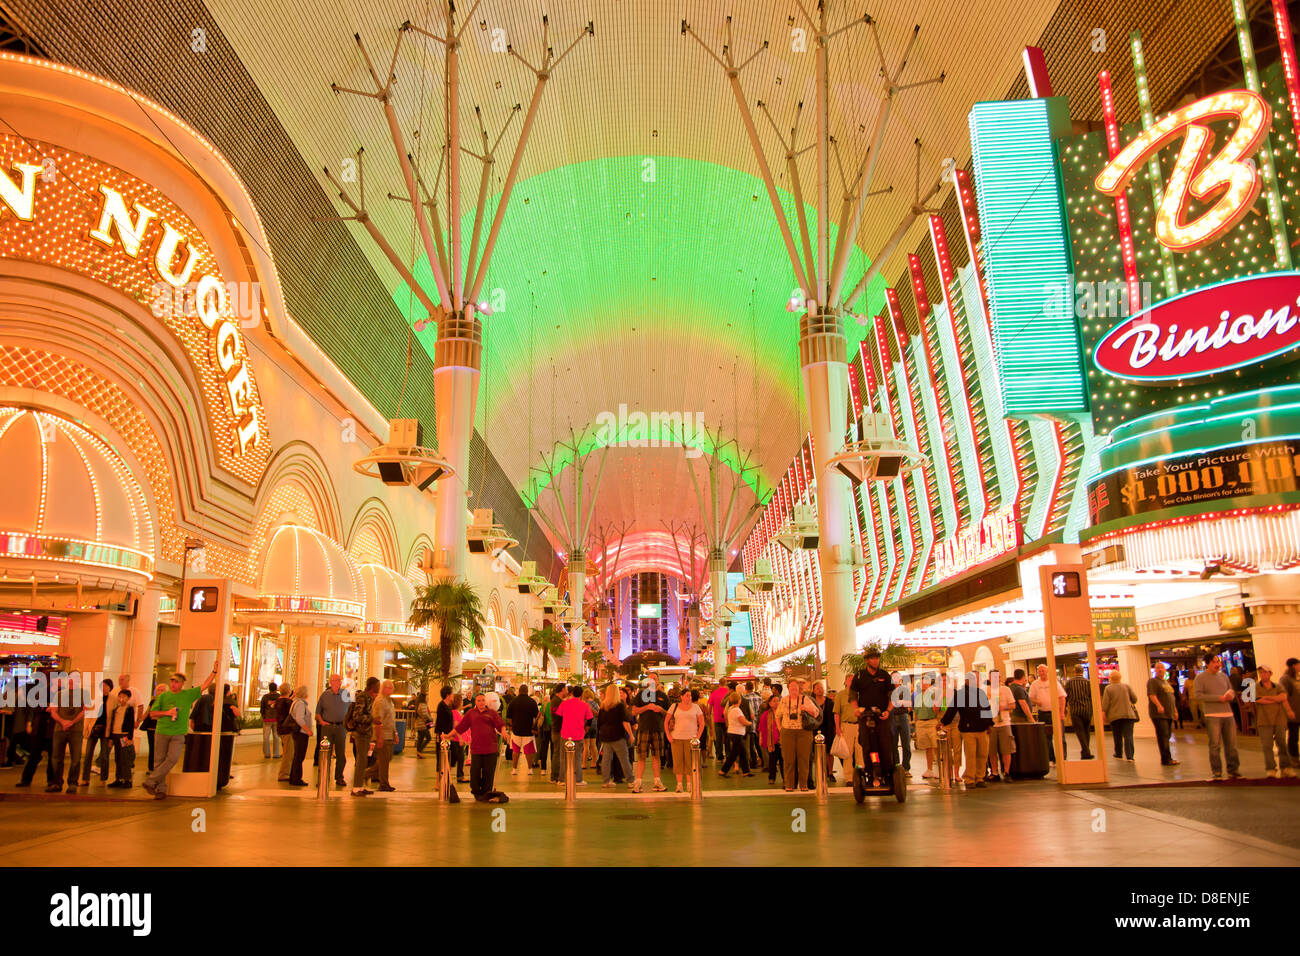 lightshow at Fremont Street Experience, Downtown Las Vegas, Nevada, United States of America, USA - Stock Image